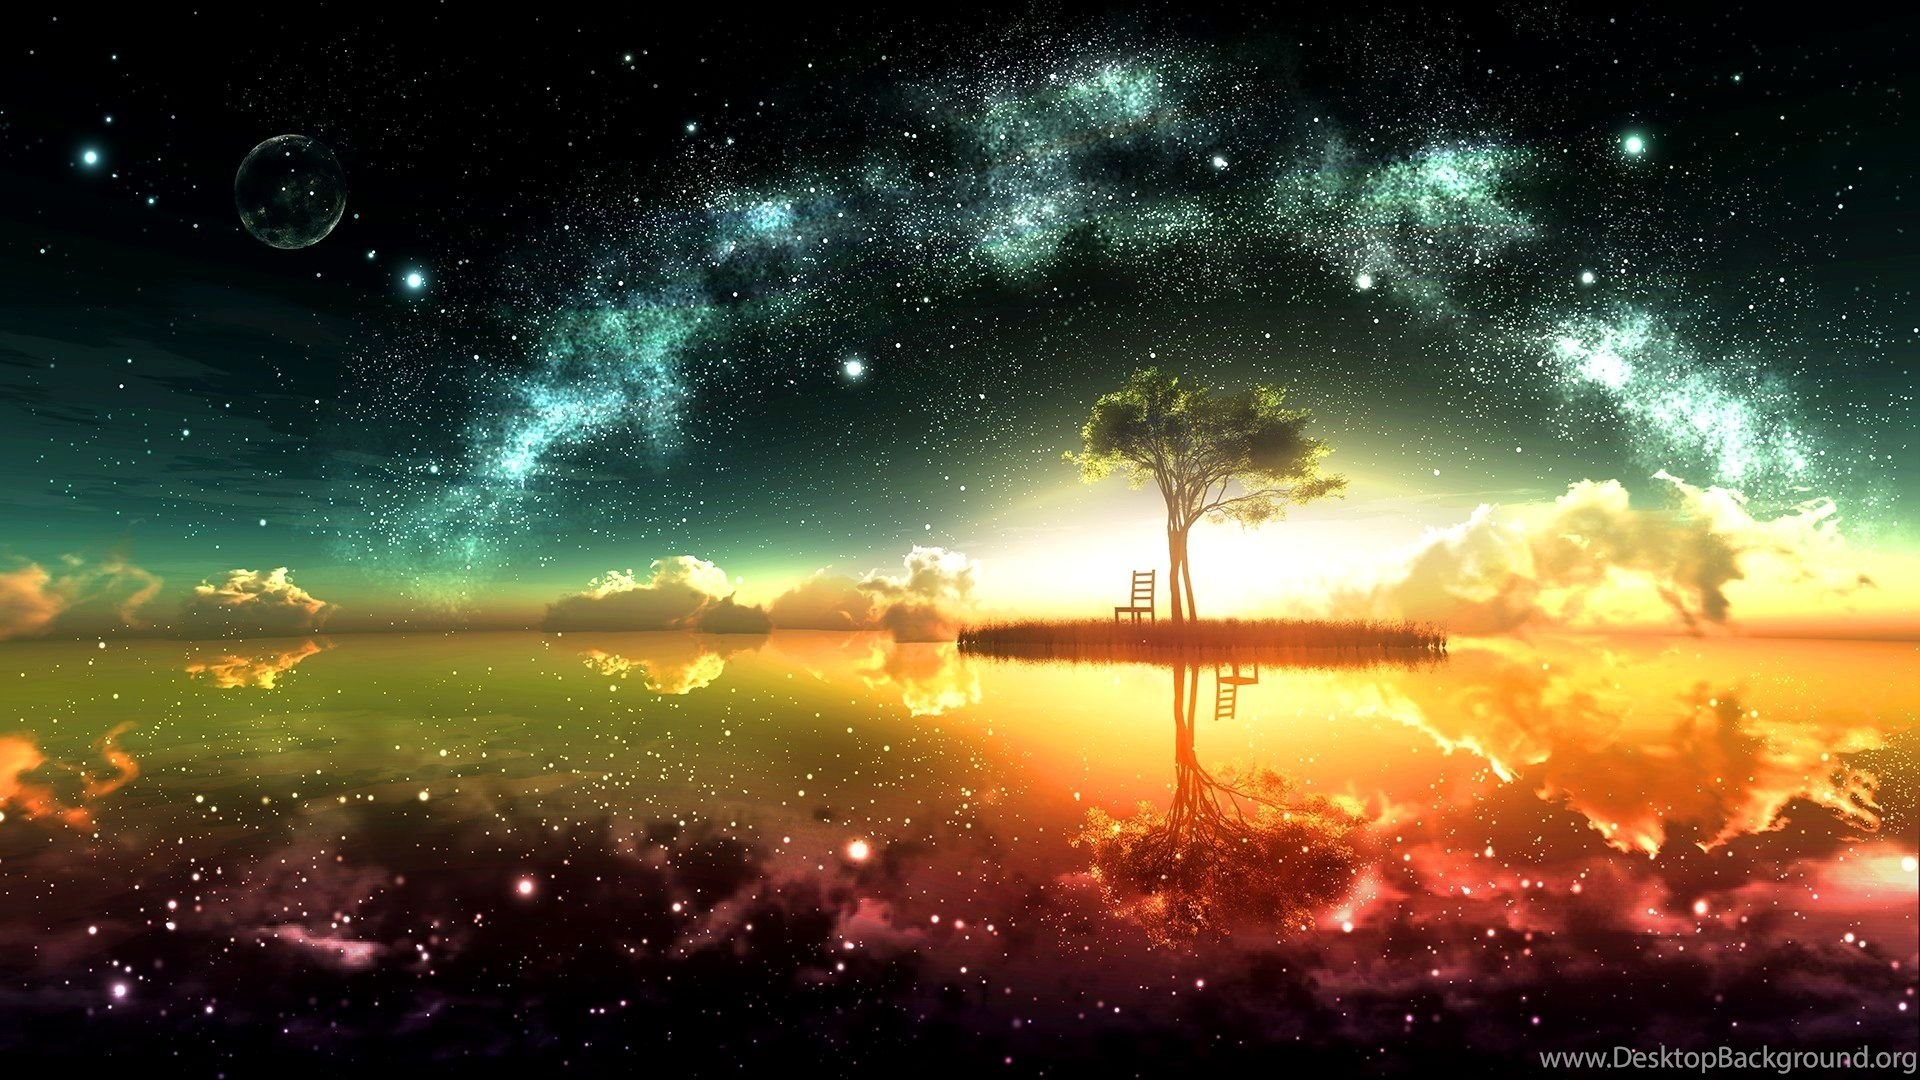 50 Hd Space Wallpapers Backgrounds For Free Download Desktop Background